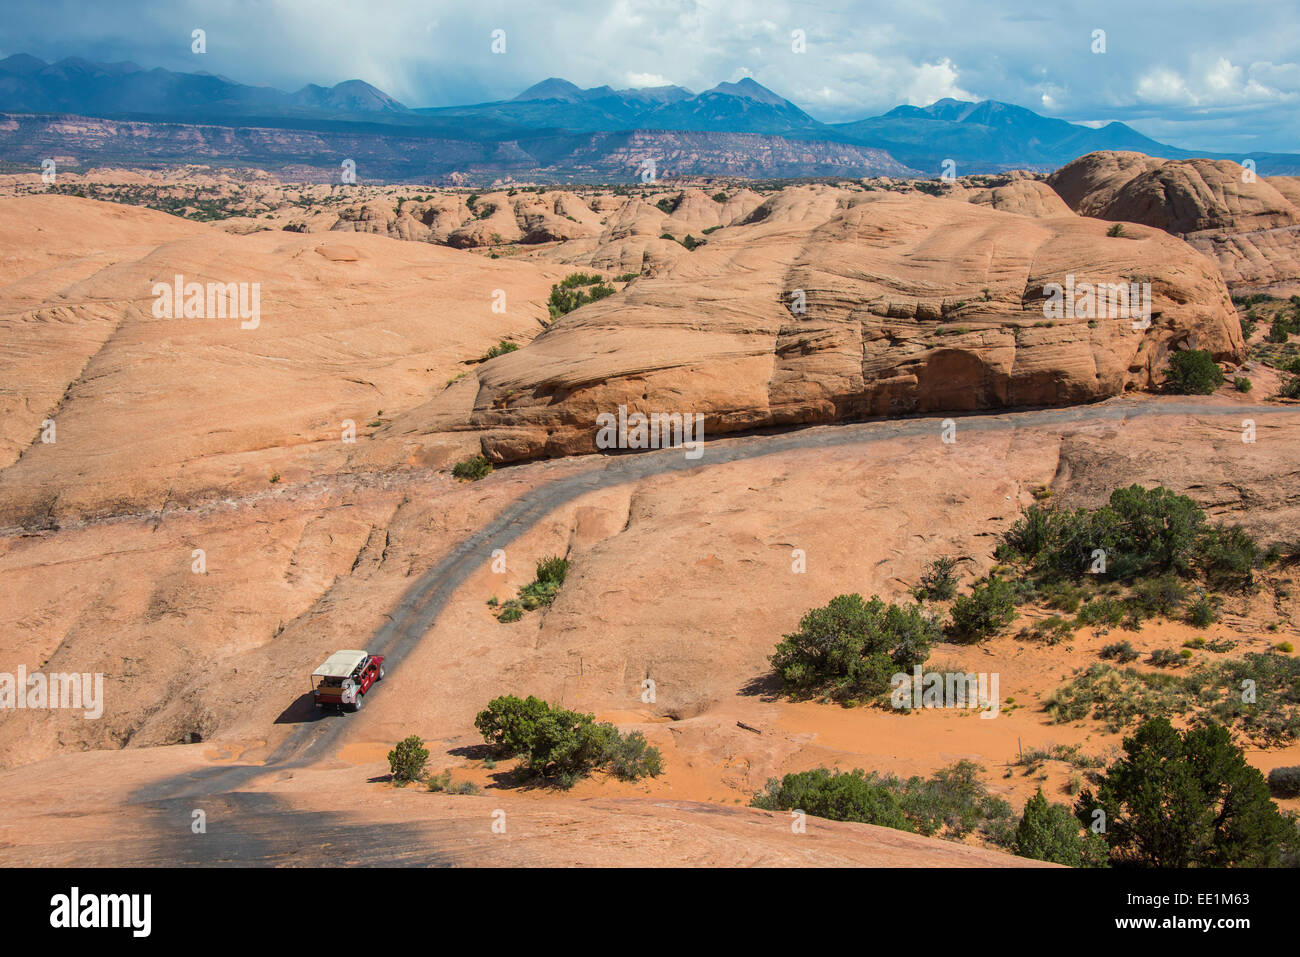 Hummer driving on the Slickrock trail, Moab, Utah, United States of America, North America - Stock Image